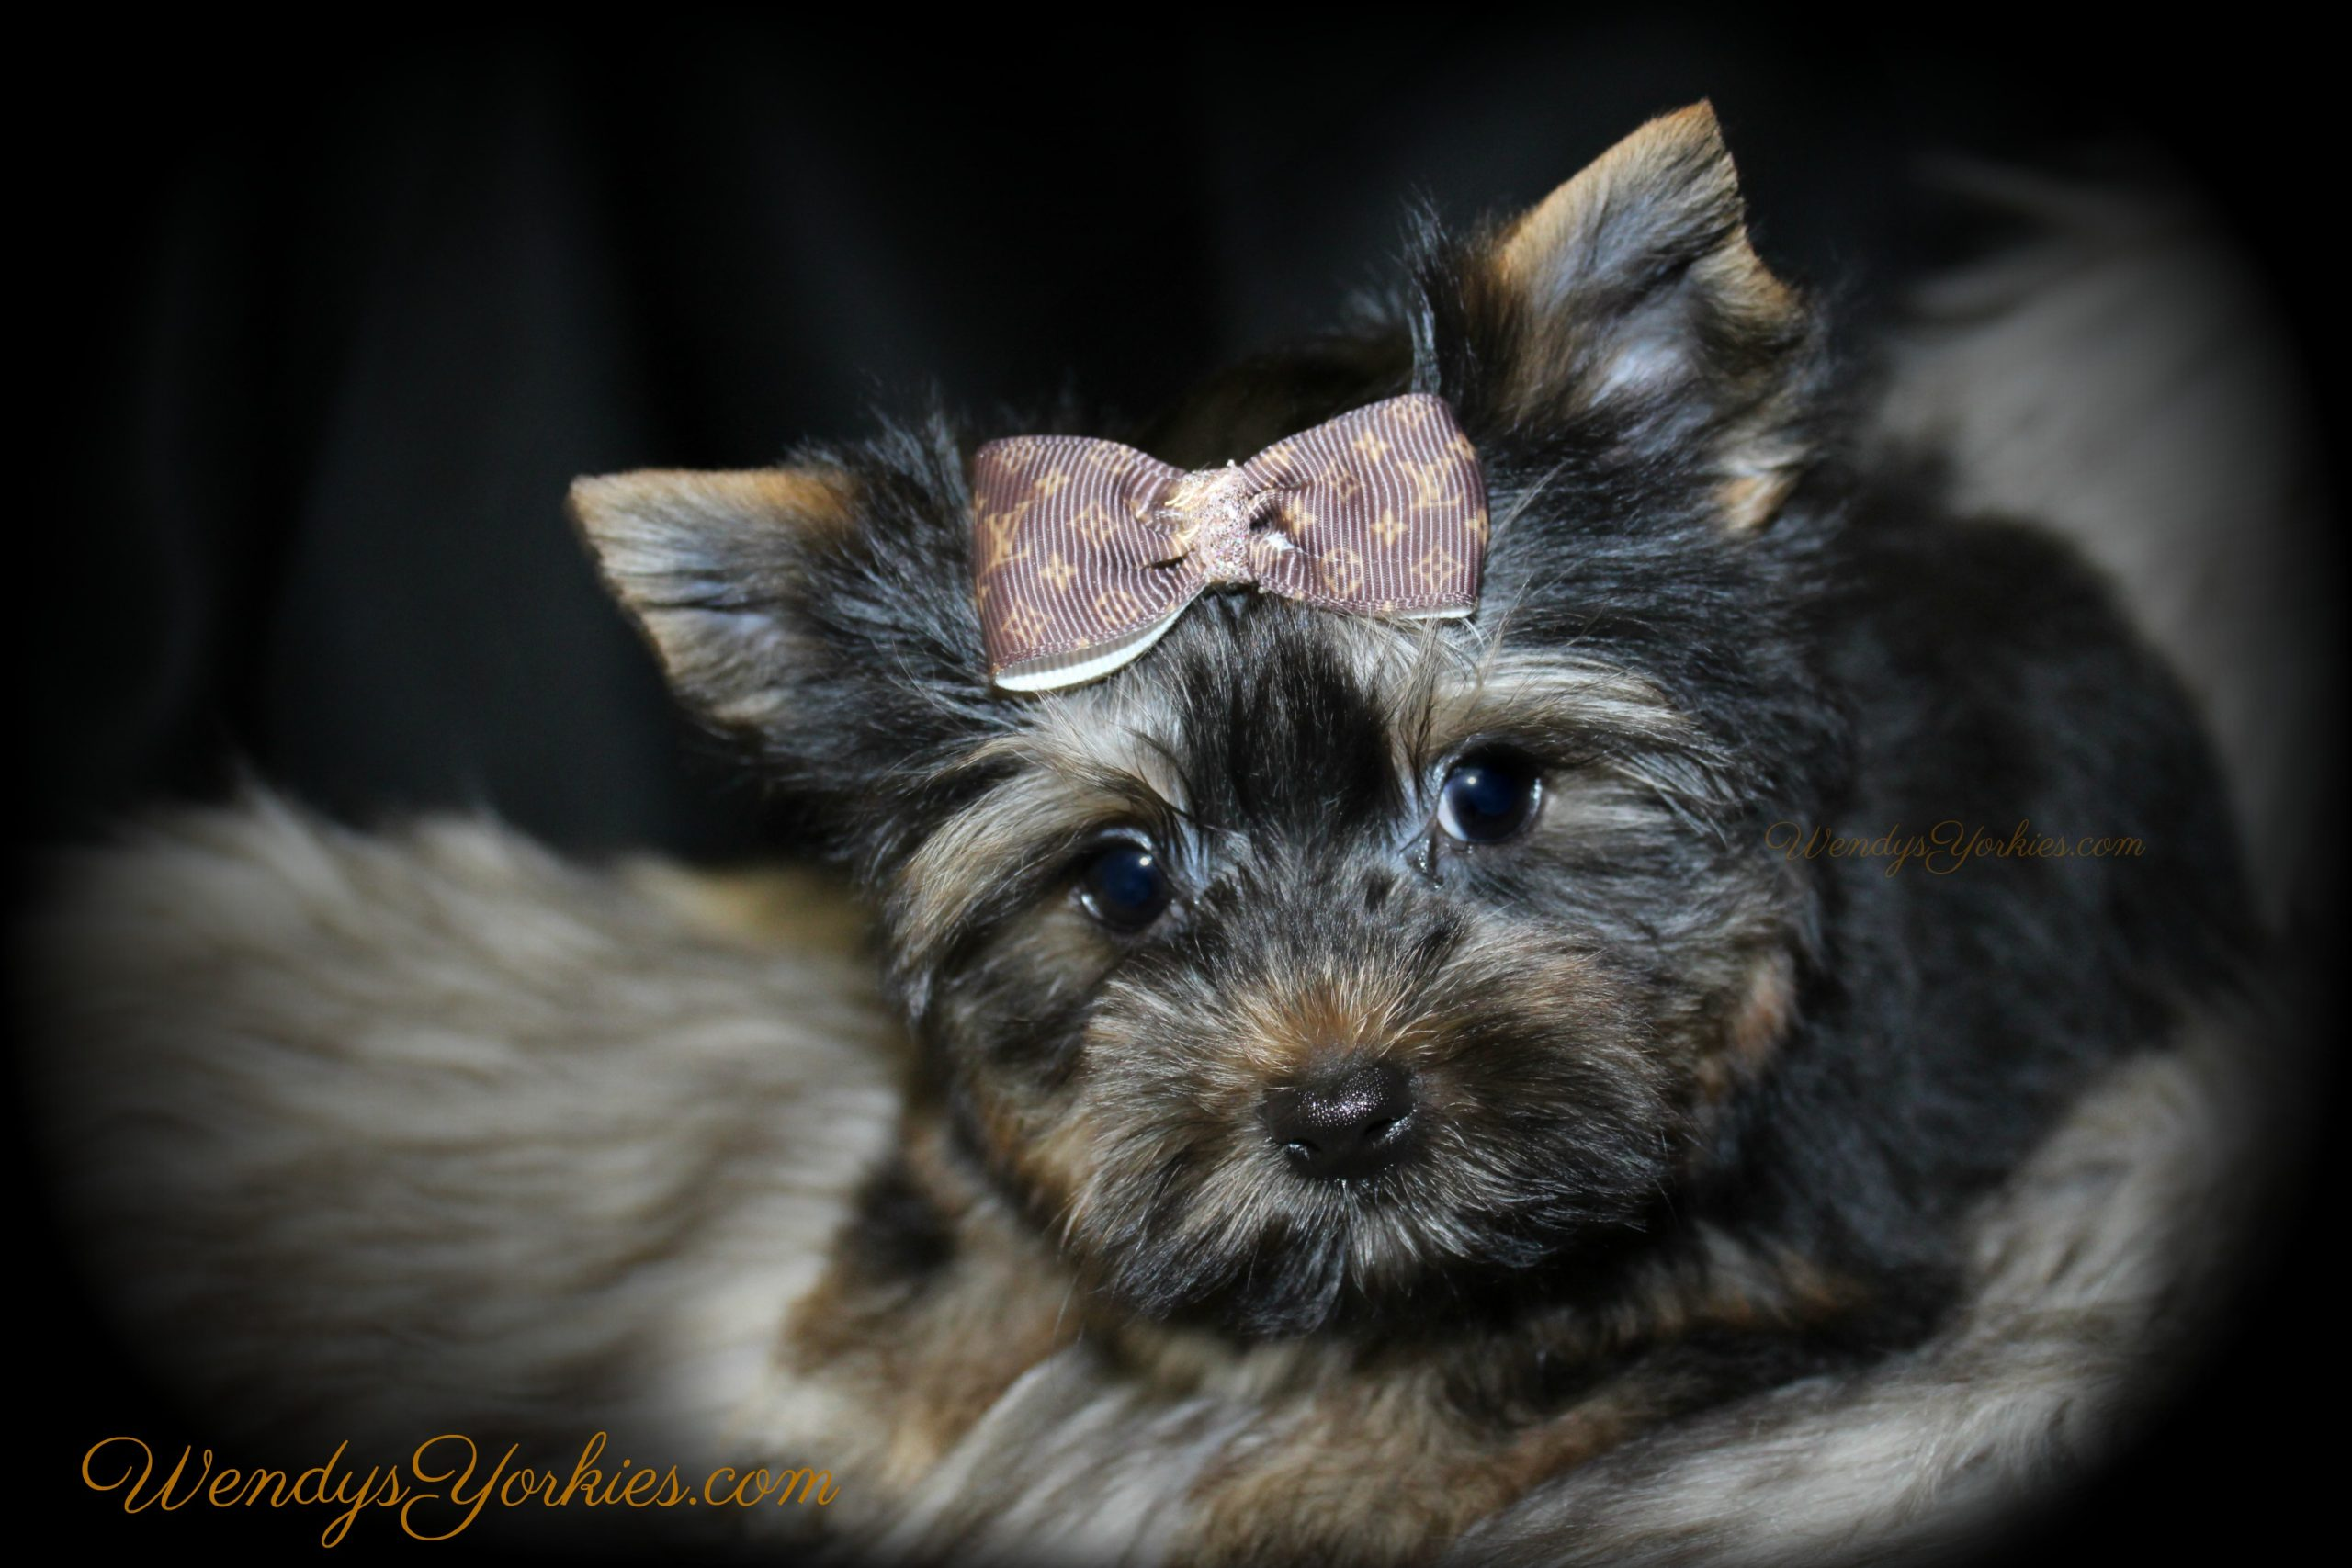 Yorkshire Terrier Breeder in Texas, JAck,WendysYorkies.com